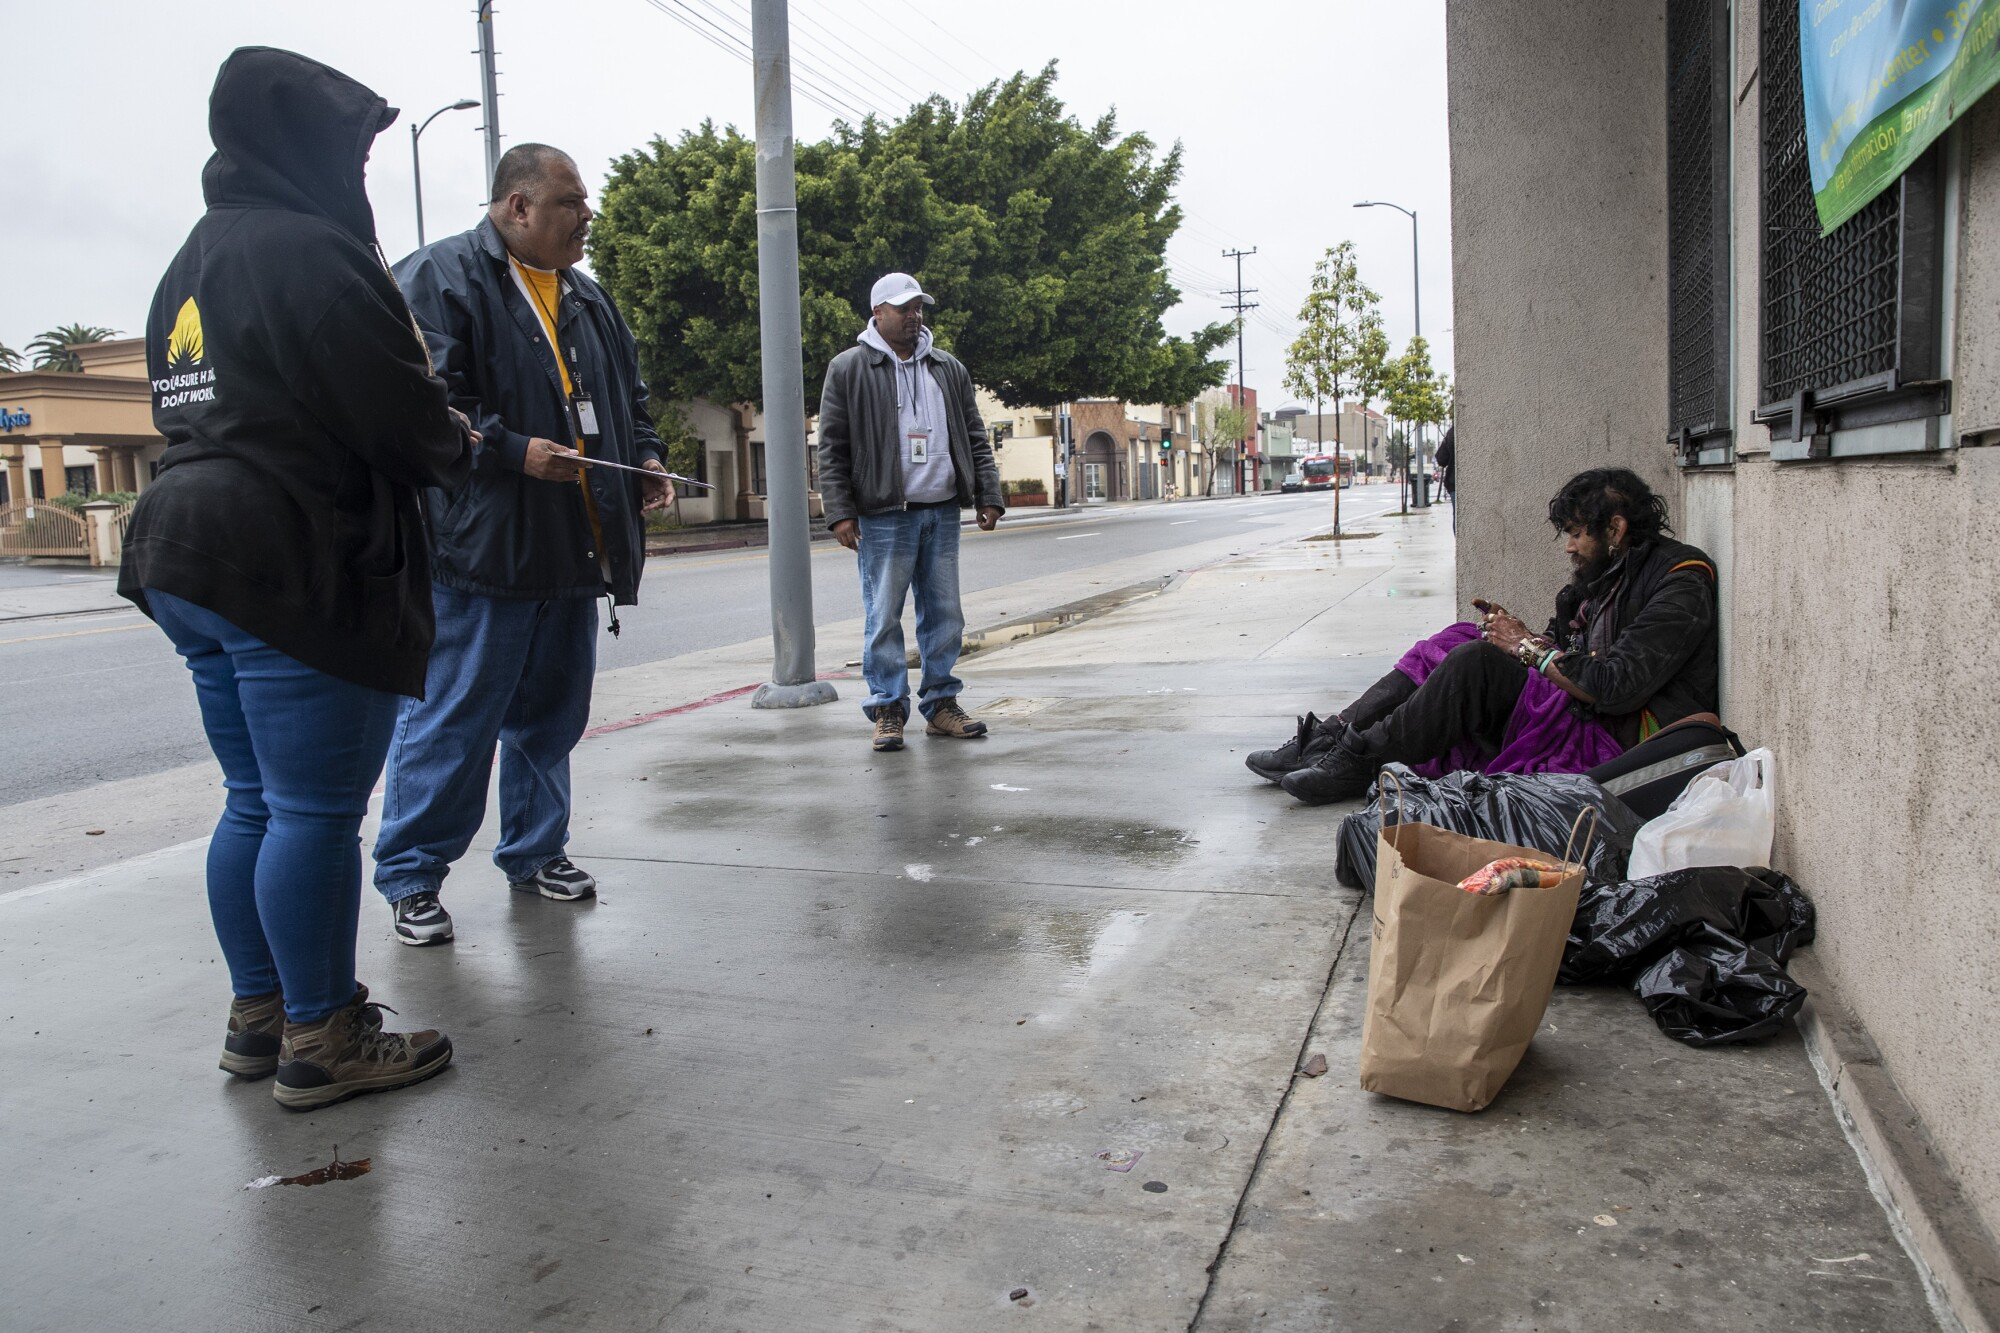 HOPICS outreach nurse Kenya Smith, right, Ralph Gomez, center, and Kat Johnson, left, leave a bag of food for Davis Soto, taking care to stay at least six feet away from him. The coronavirus pandemic has led to a list of new precautions that outreach workers must follow.